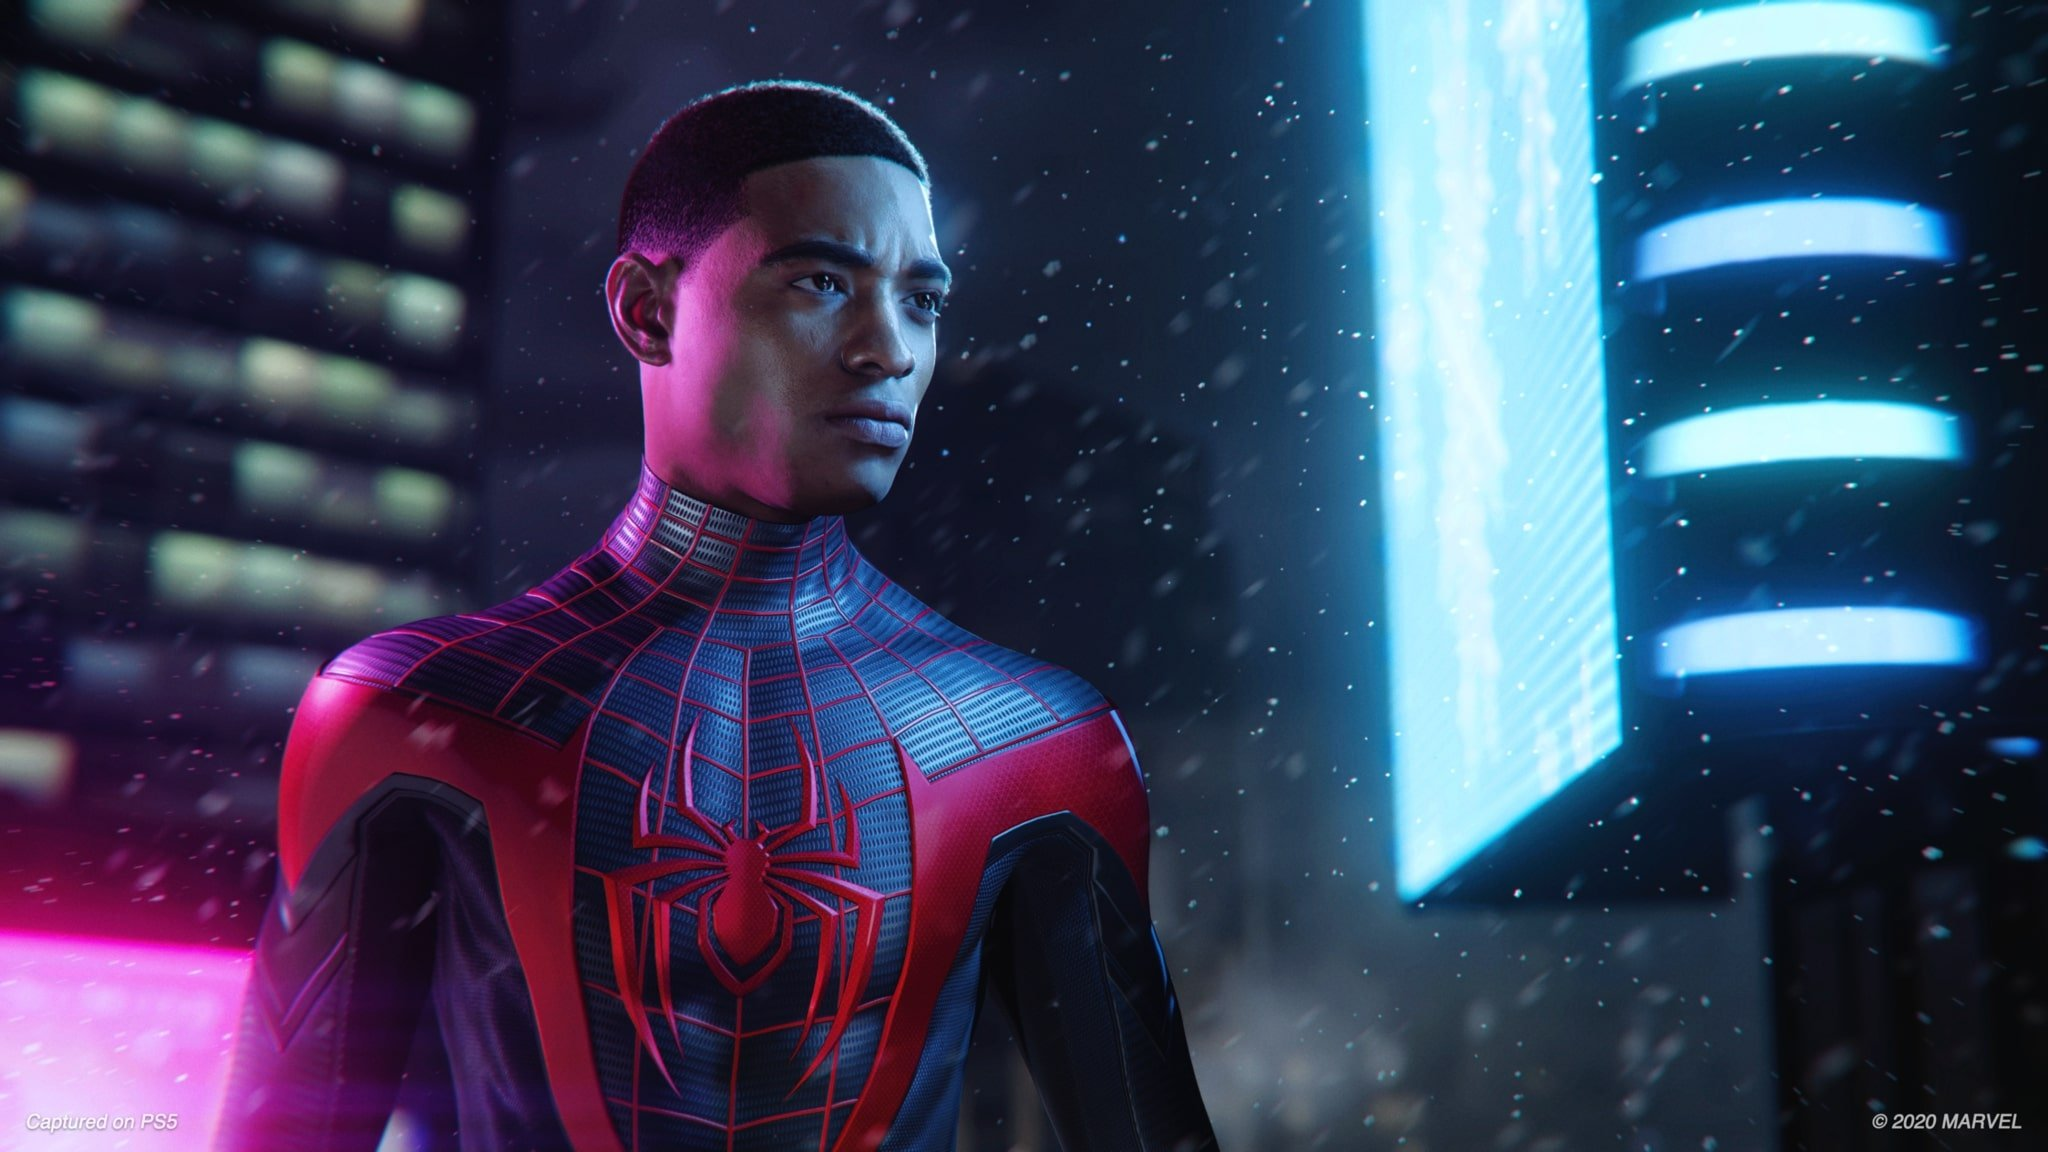 New trailer for Spider-Man Miles Morales shown during PS5 Showcase